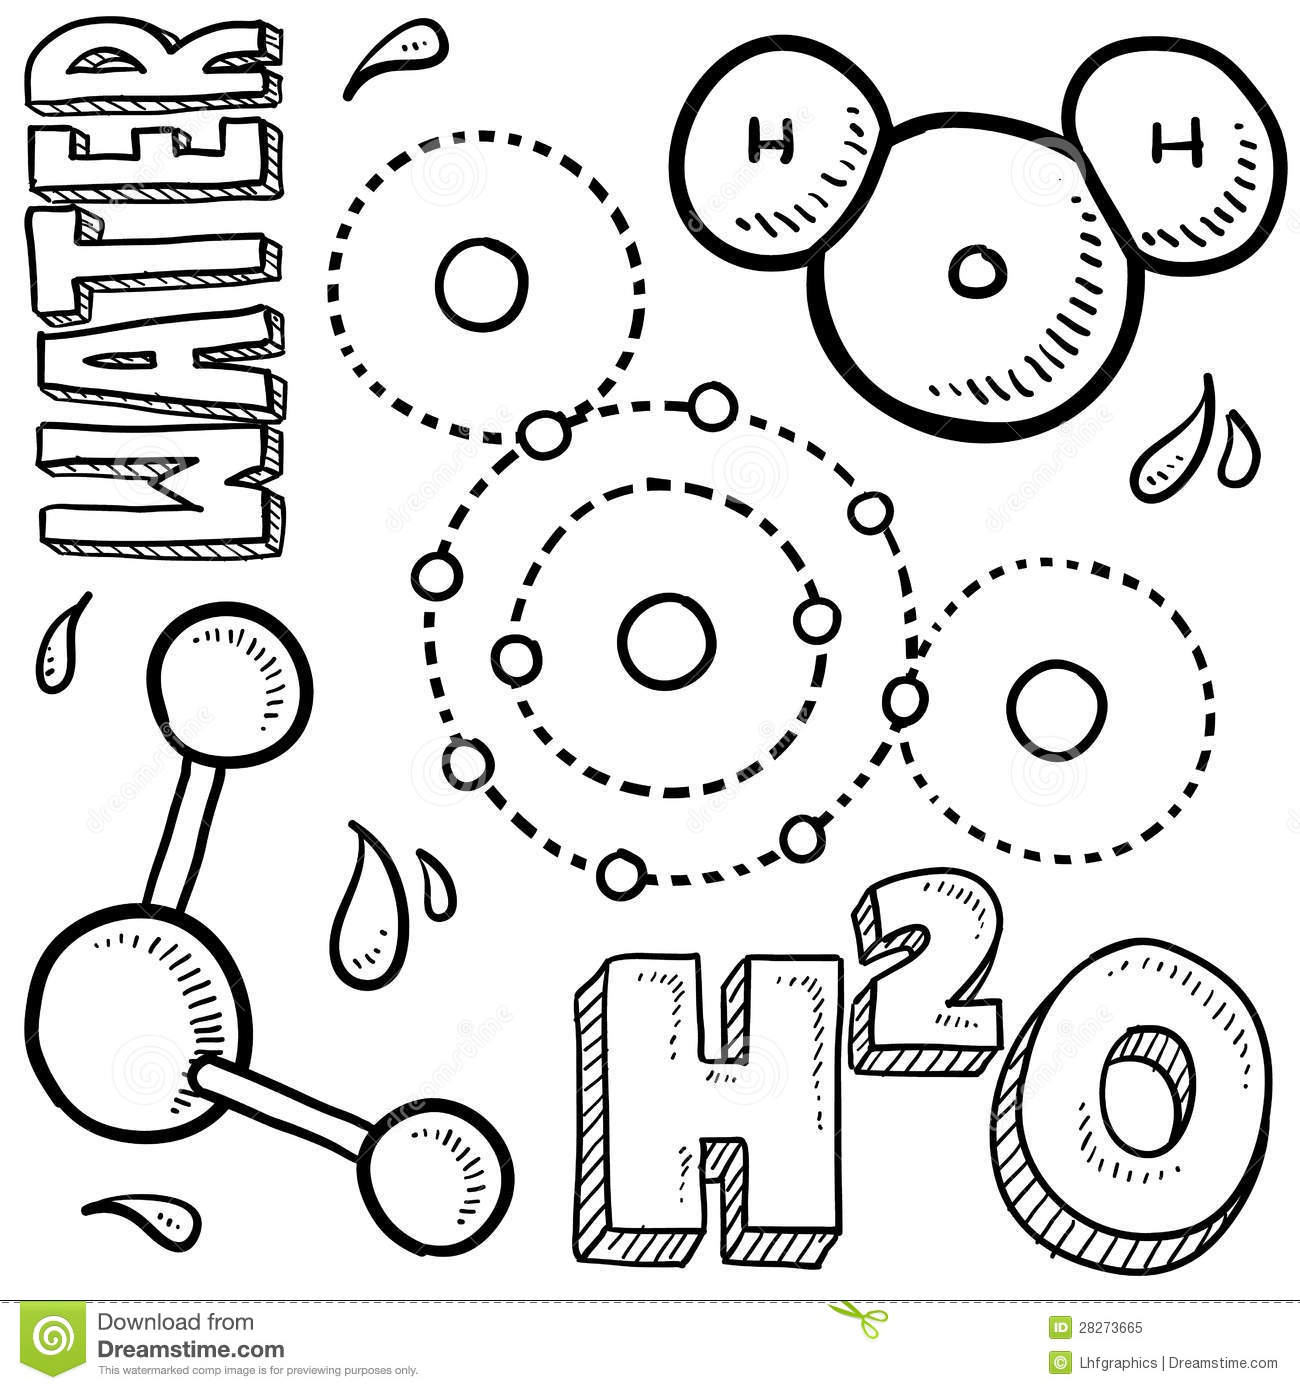 water molecule science sketch stock vector